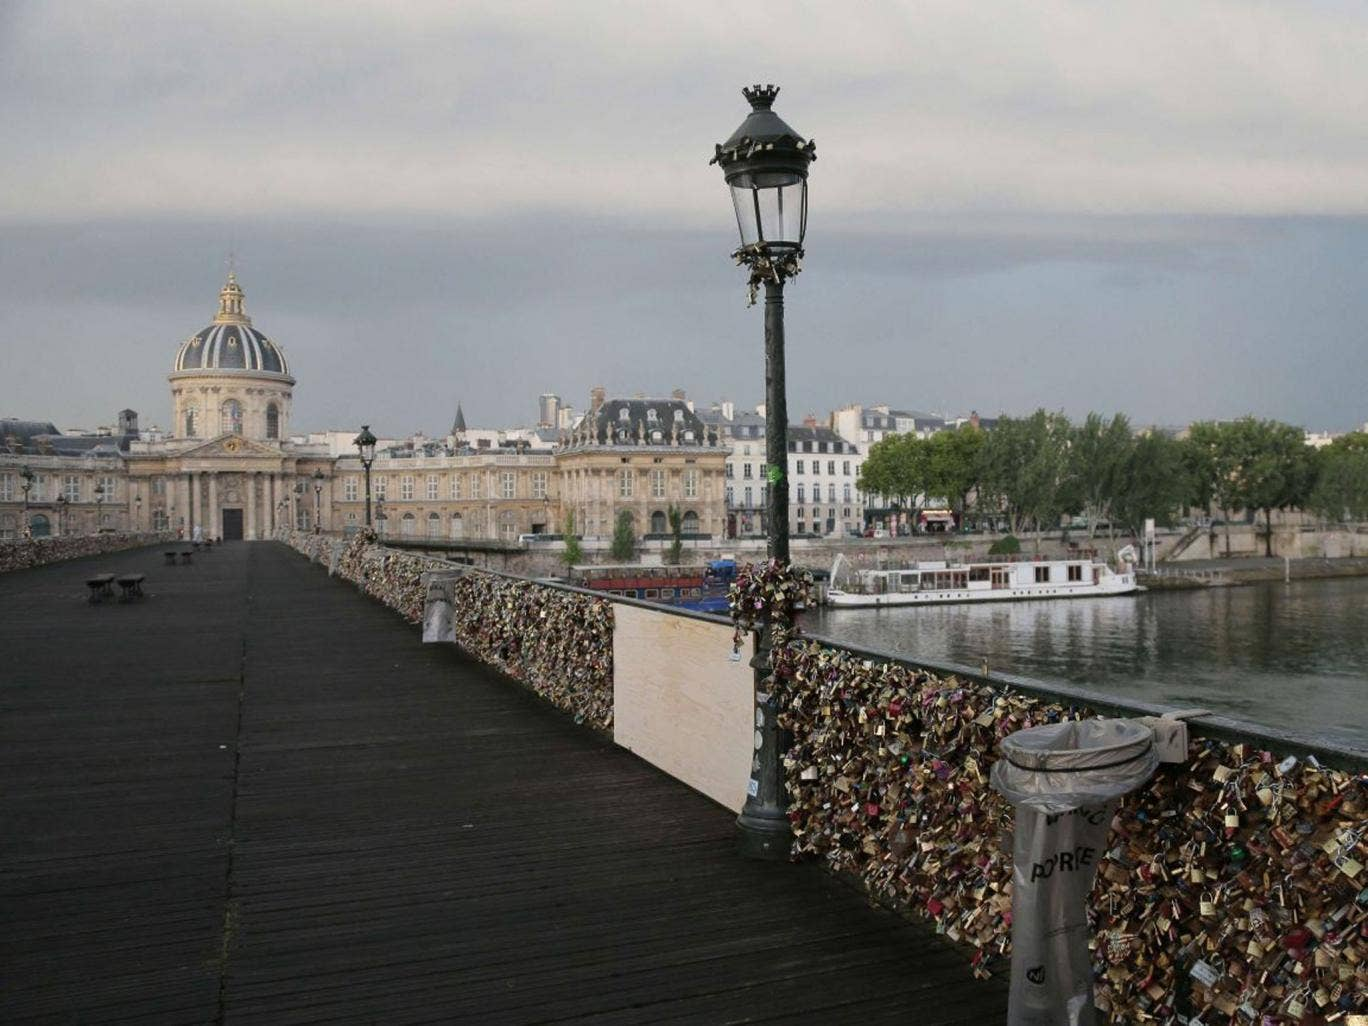 A photo taken on June 9, 2014 shows 'love padlocks' attached to a fence of the Pont des Arts bridge over the Seine river in Paris